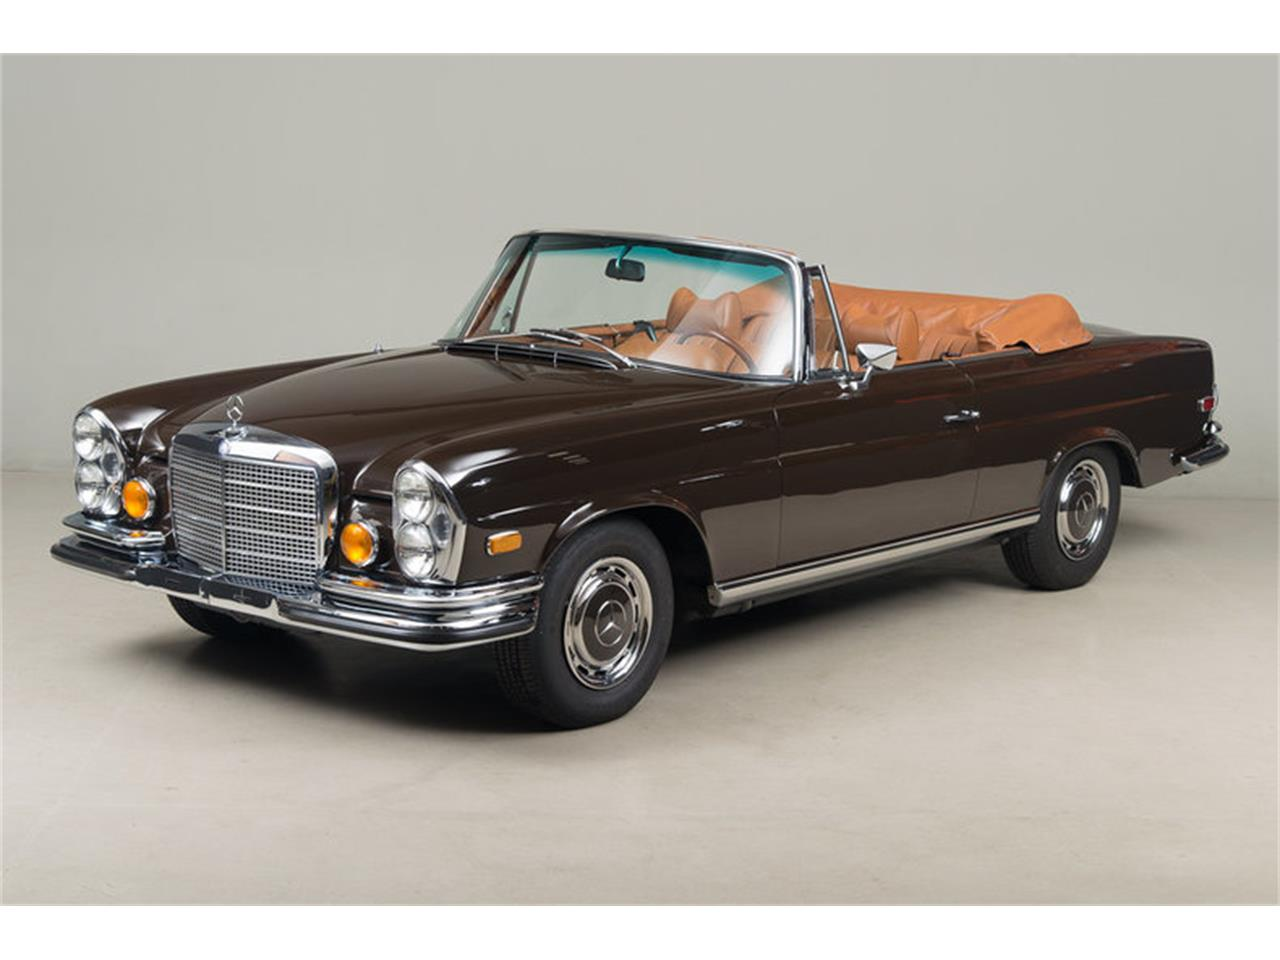 Large Picture of Classic '71 Mercedes-Benz 280 SE 3.5 Cabriolet located in Scotts Valley California Auction Vehicle Offered by Canepa - G0JQ